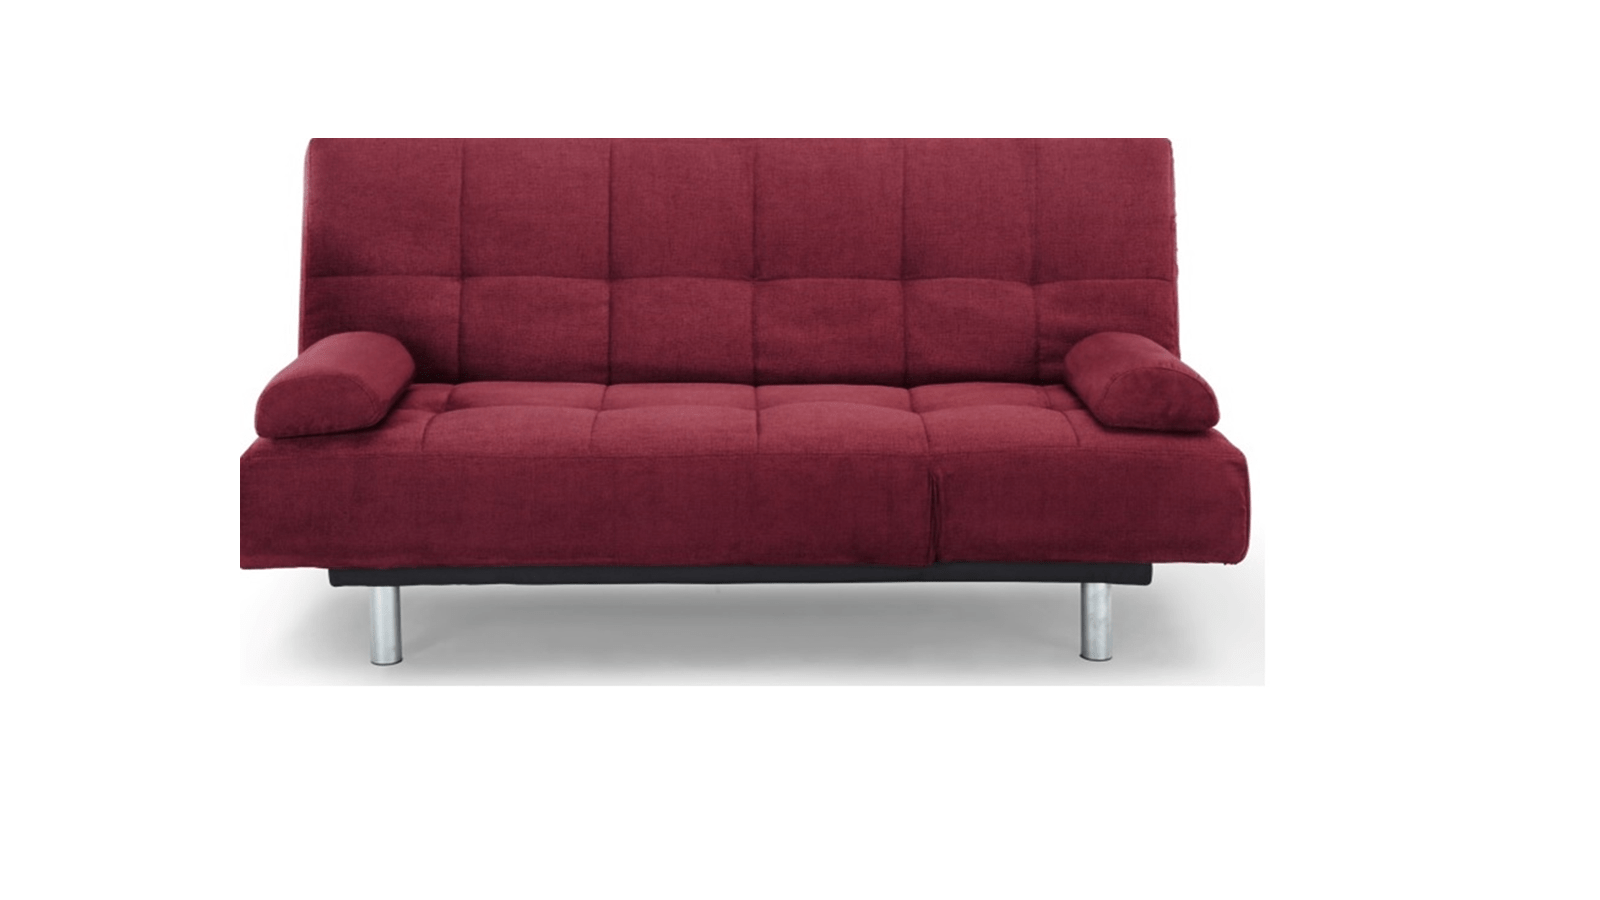 Sofa Sale Harveys Sofa Beds For Sale Harvey Norman Best Interior Furniture